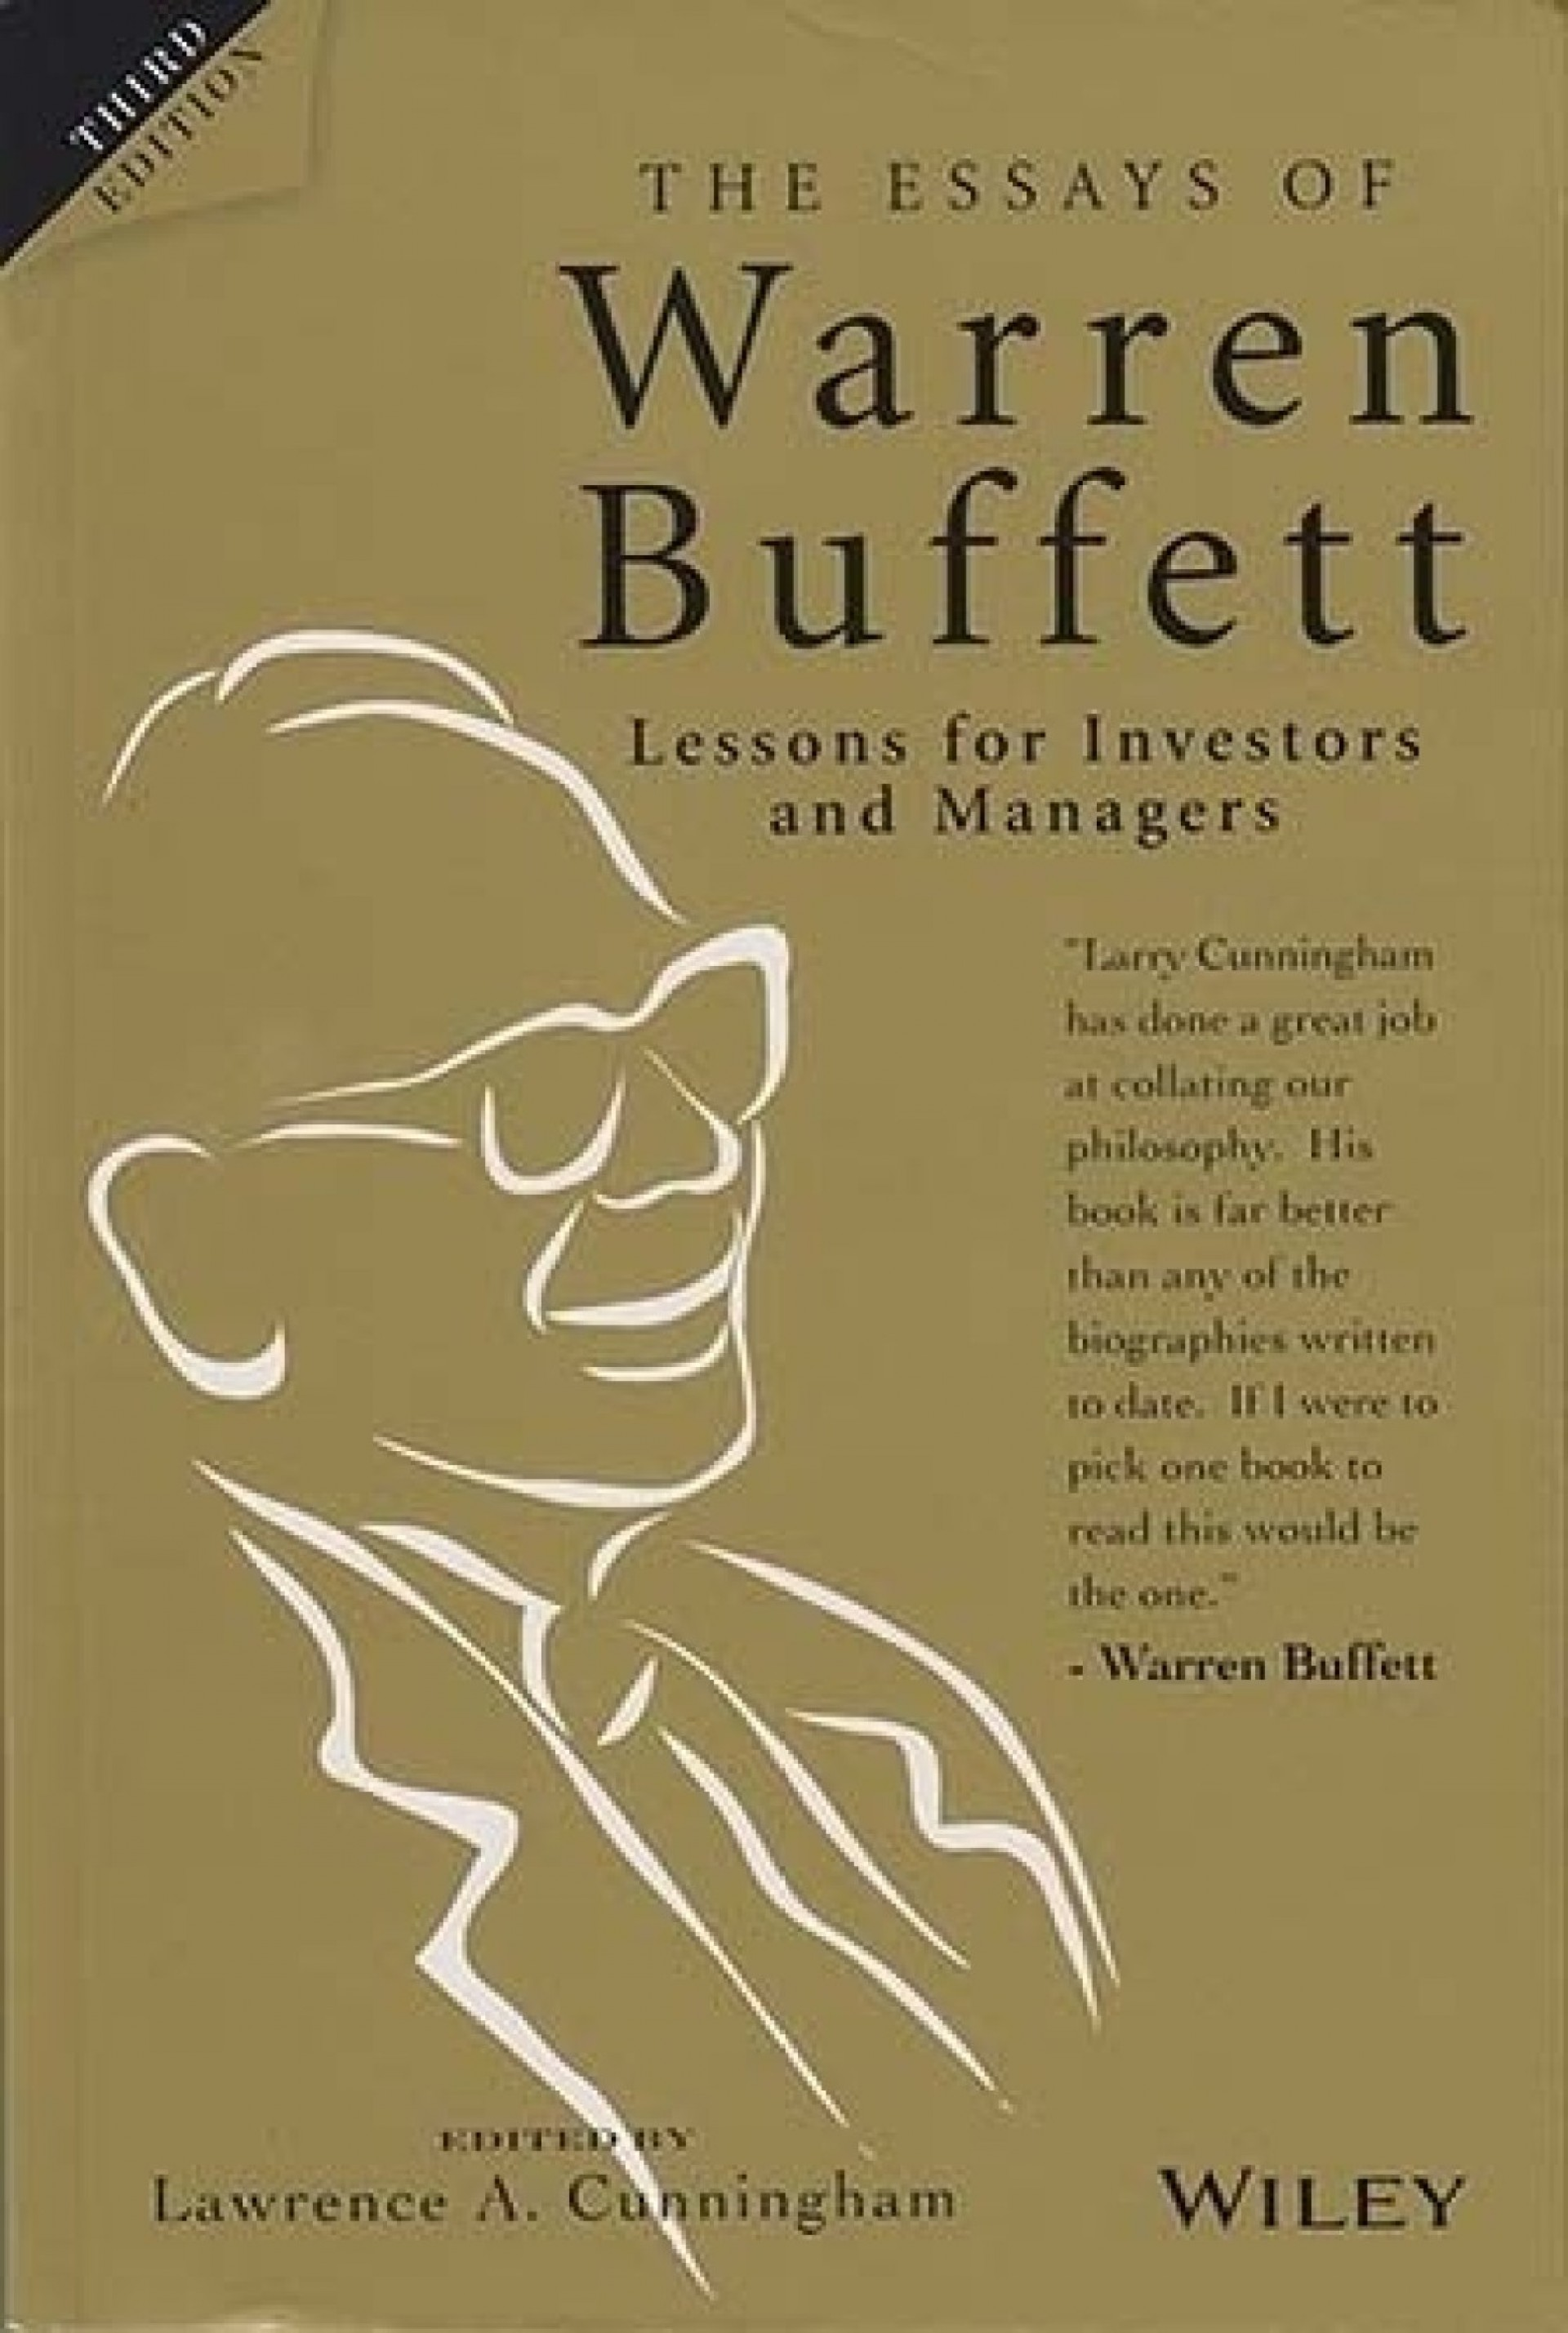 014 Essay Example The Essays Of Warren Buffett Lessons For Investors And Managers Original Striking 4th Edition Free Pdf 1920